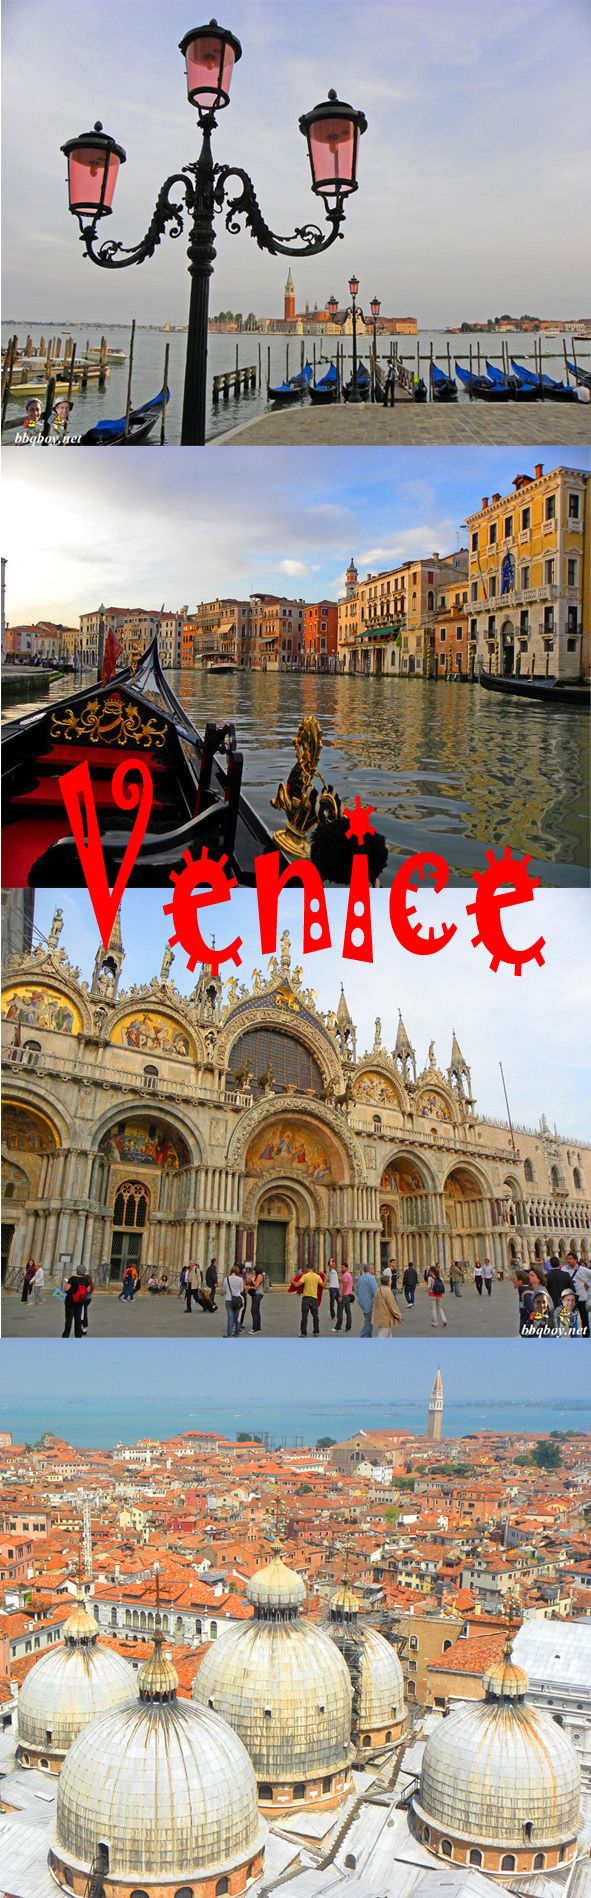 best ideas about trips to venice venice venice 17 best ideas about trips to venice venice venice and gondola venice